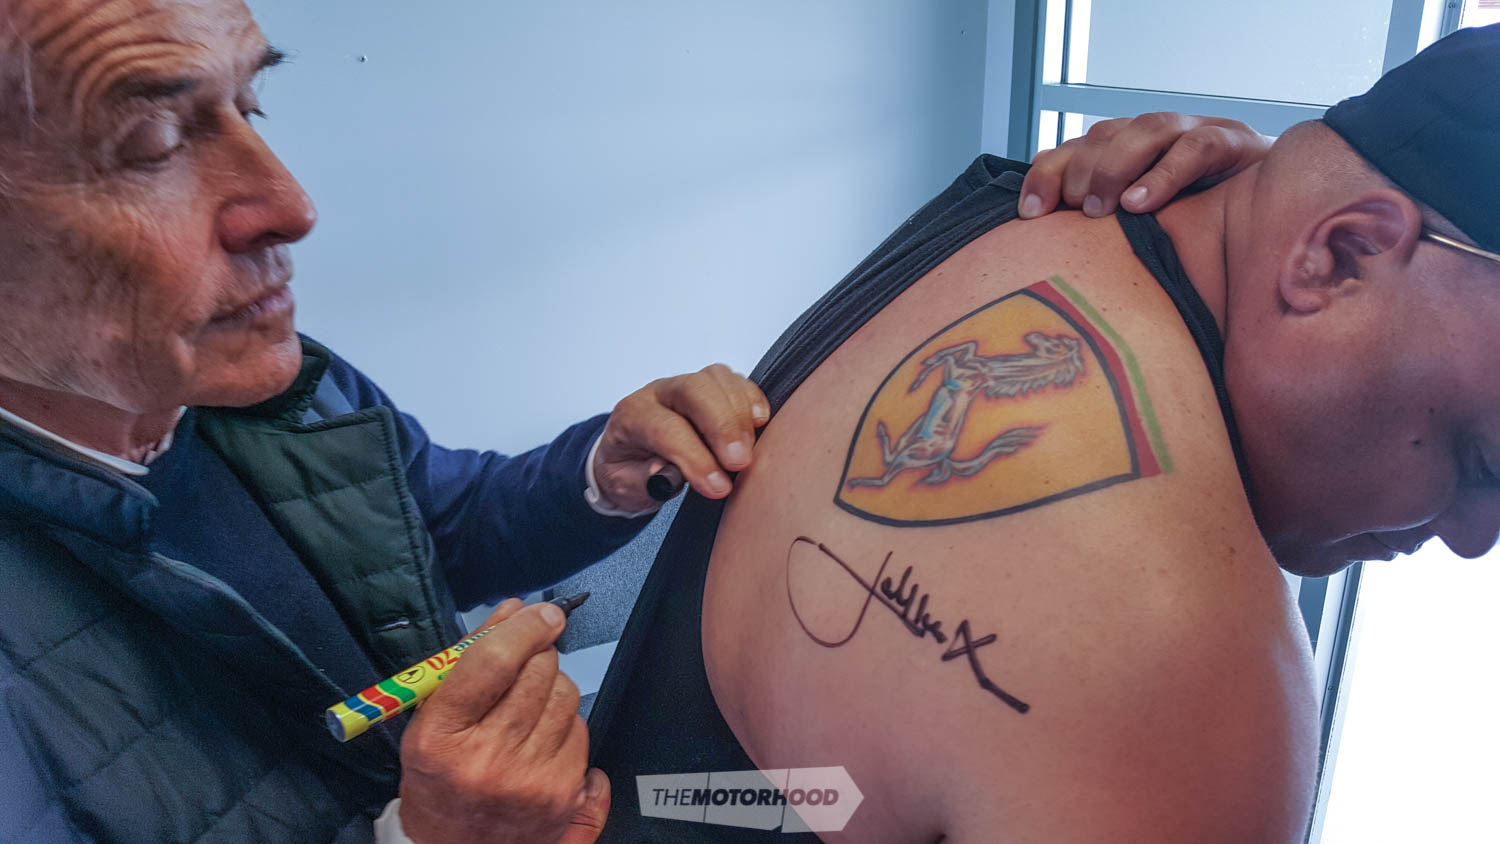 Jacky signs another autograph — this one to be tattooed